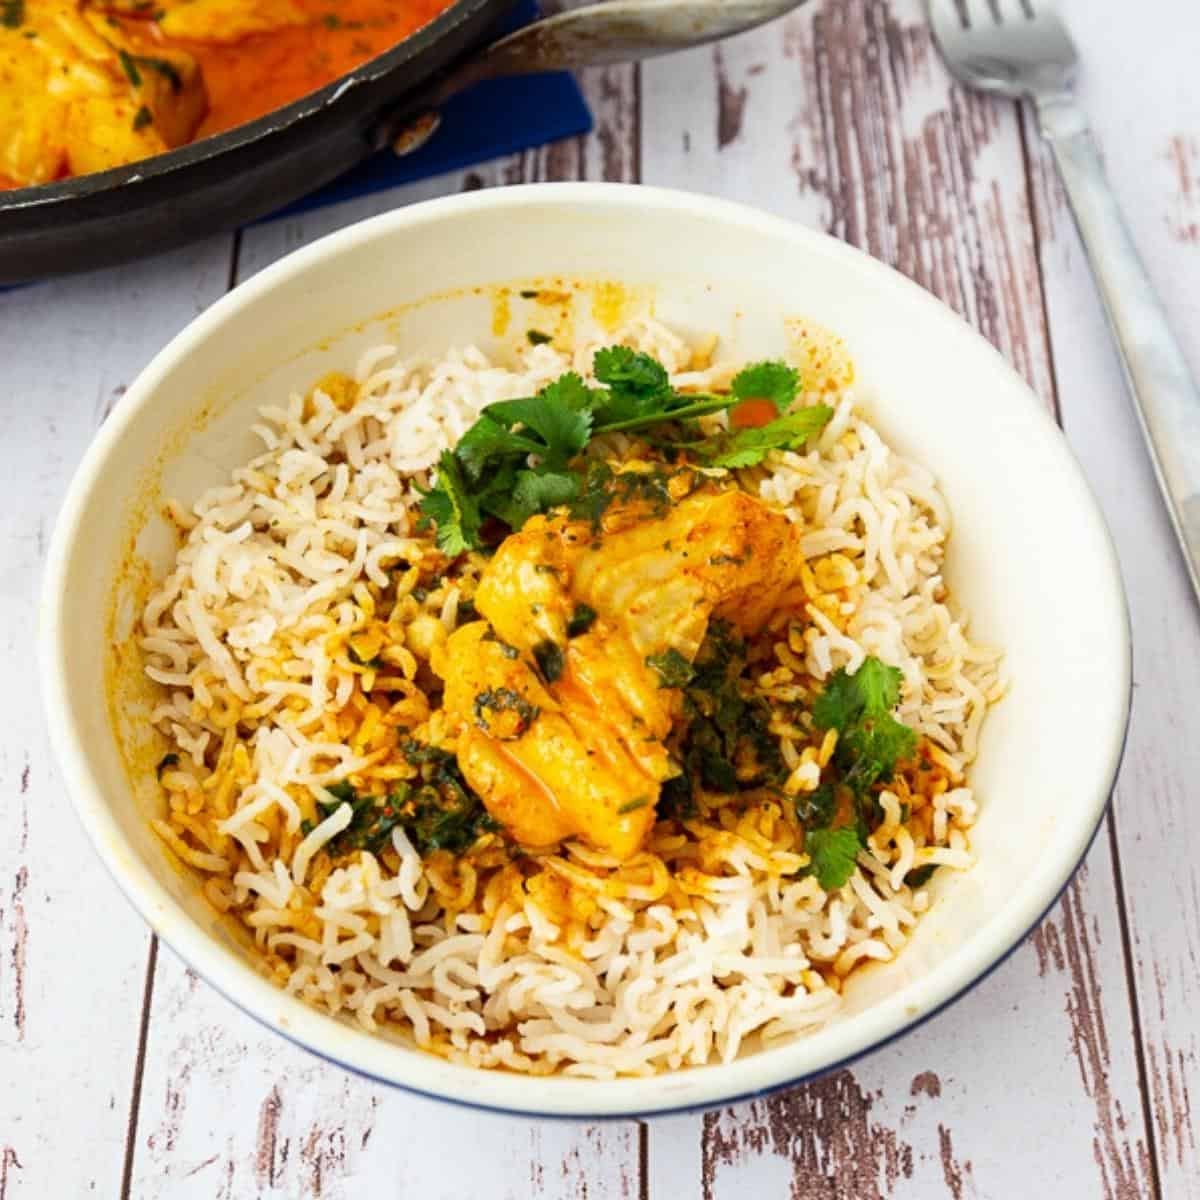 A bowl with rice and curry and fish.